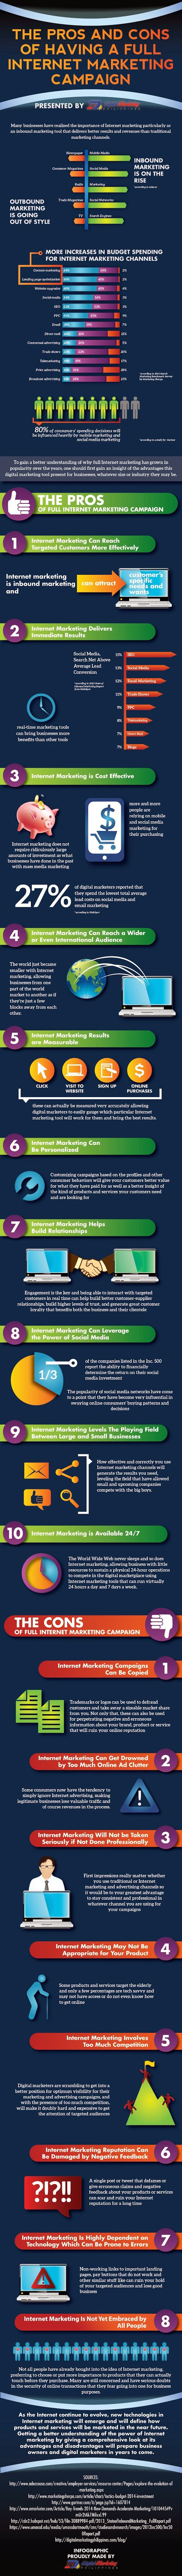 The Pros and Cons of an Internet Marketing - How the Web Has Changed the Rules [Infographic] - JohnEEngle.com